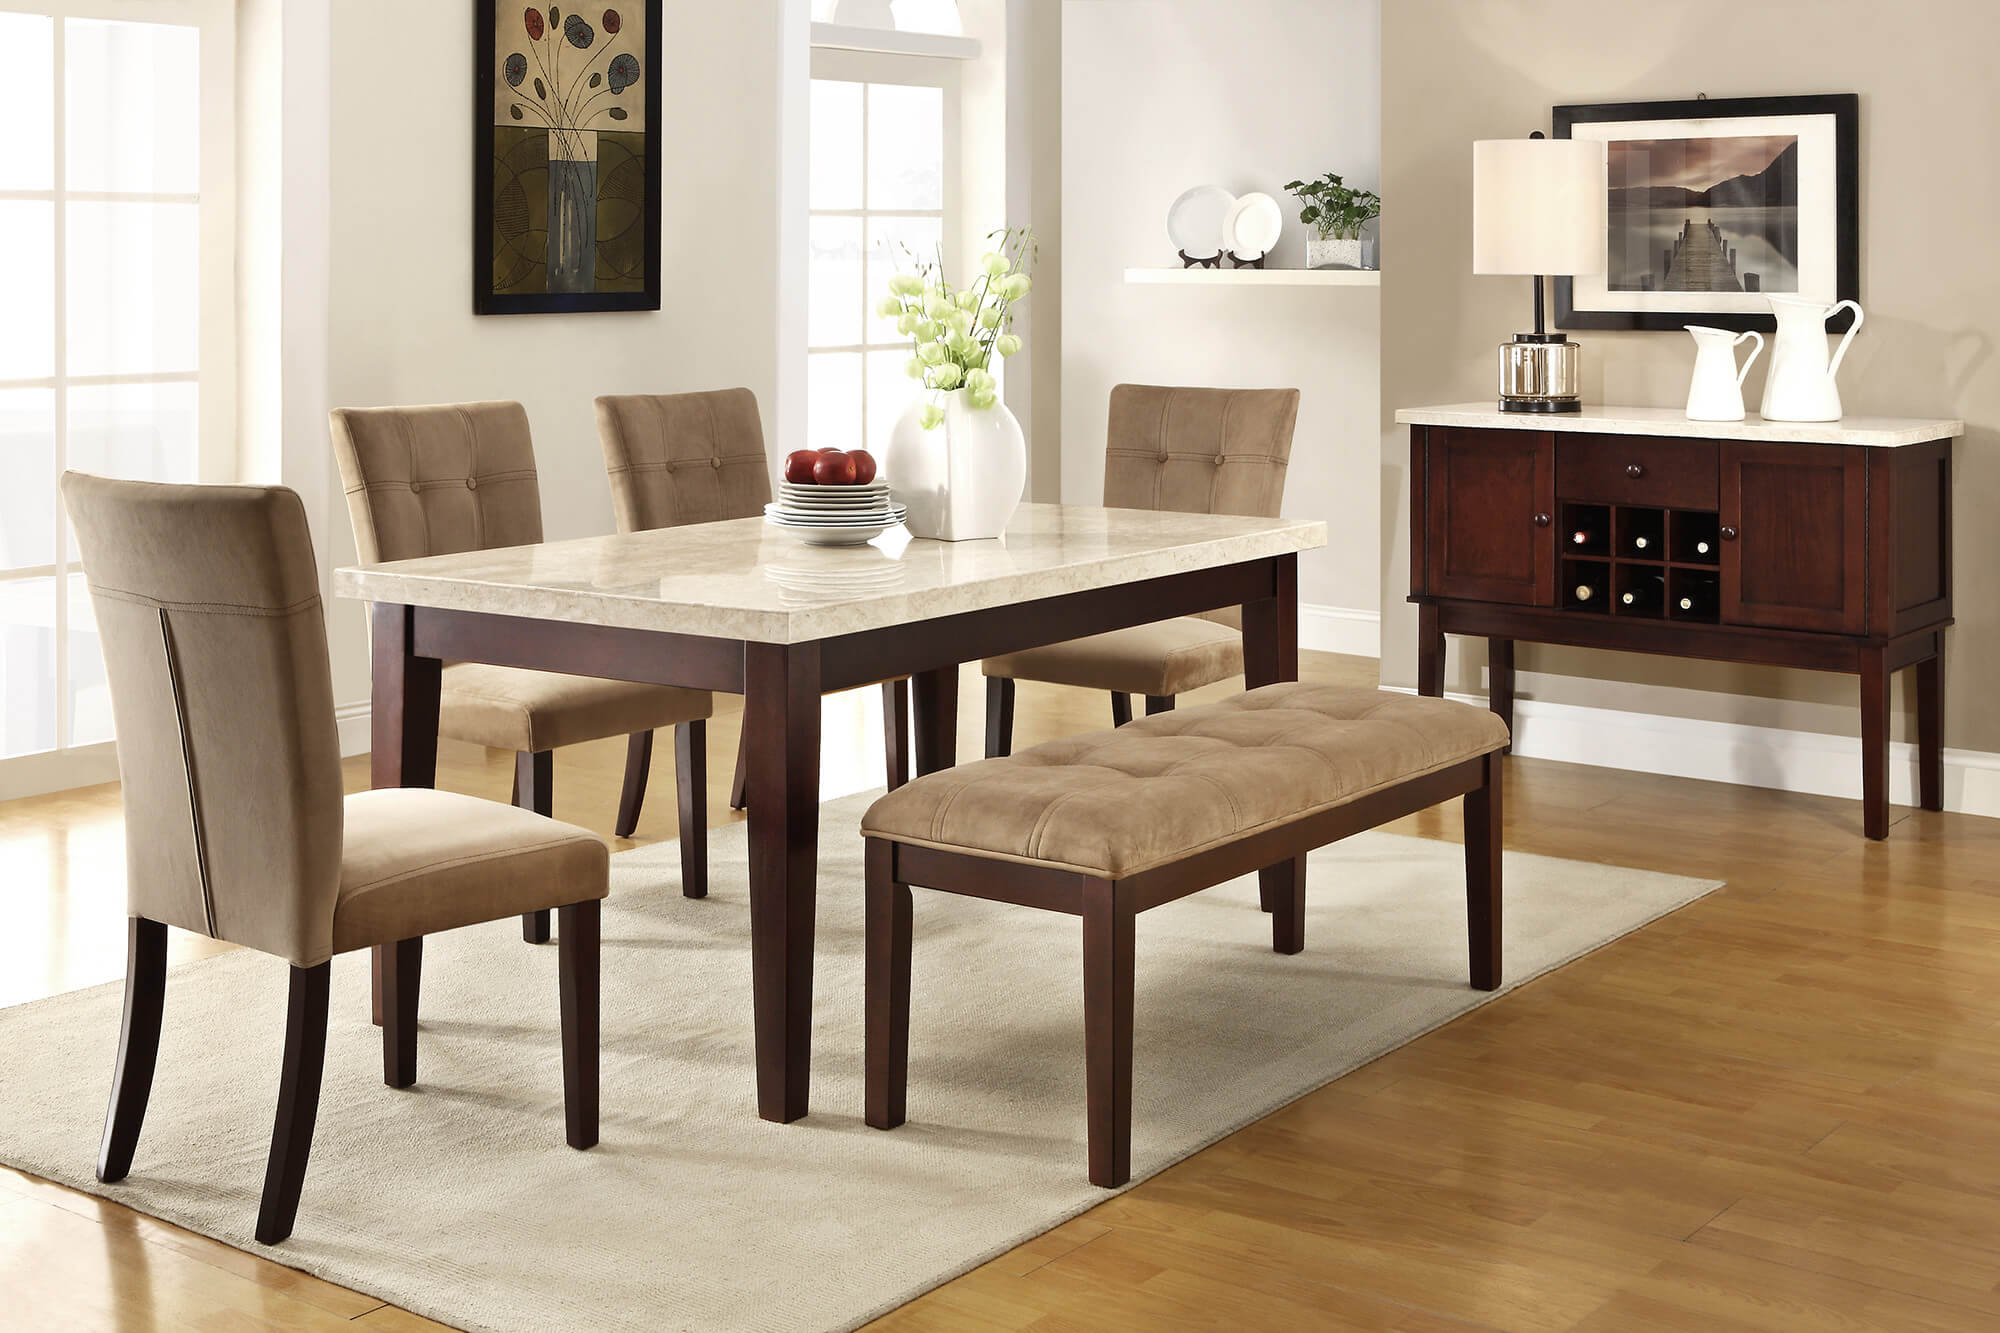 kitchen dinette sets with bench. 26 big small dining room sets